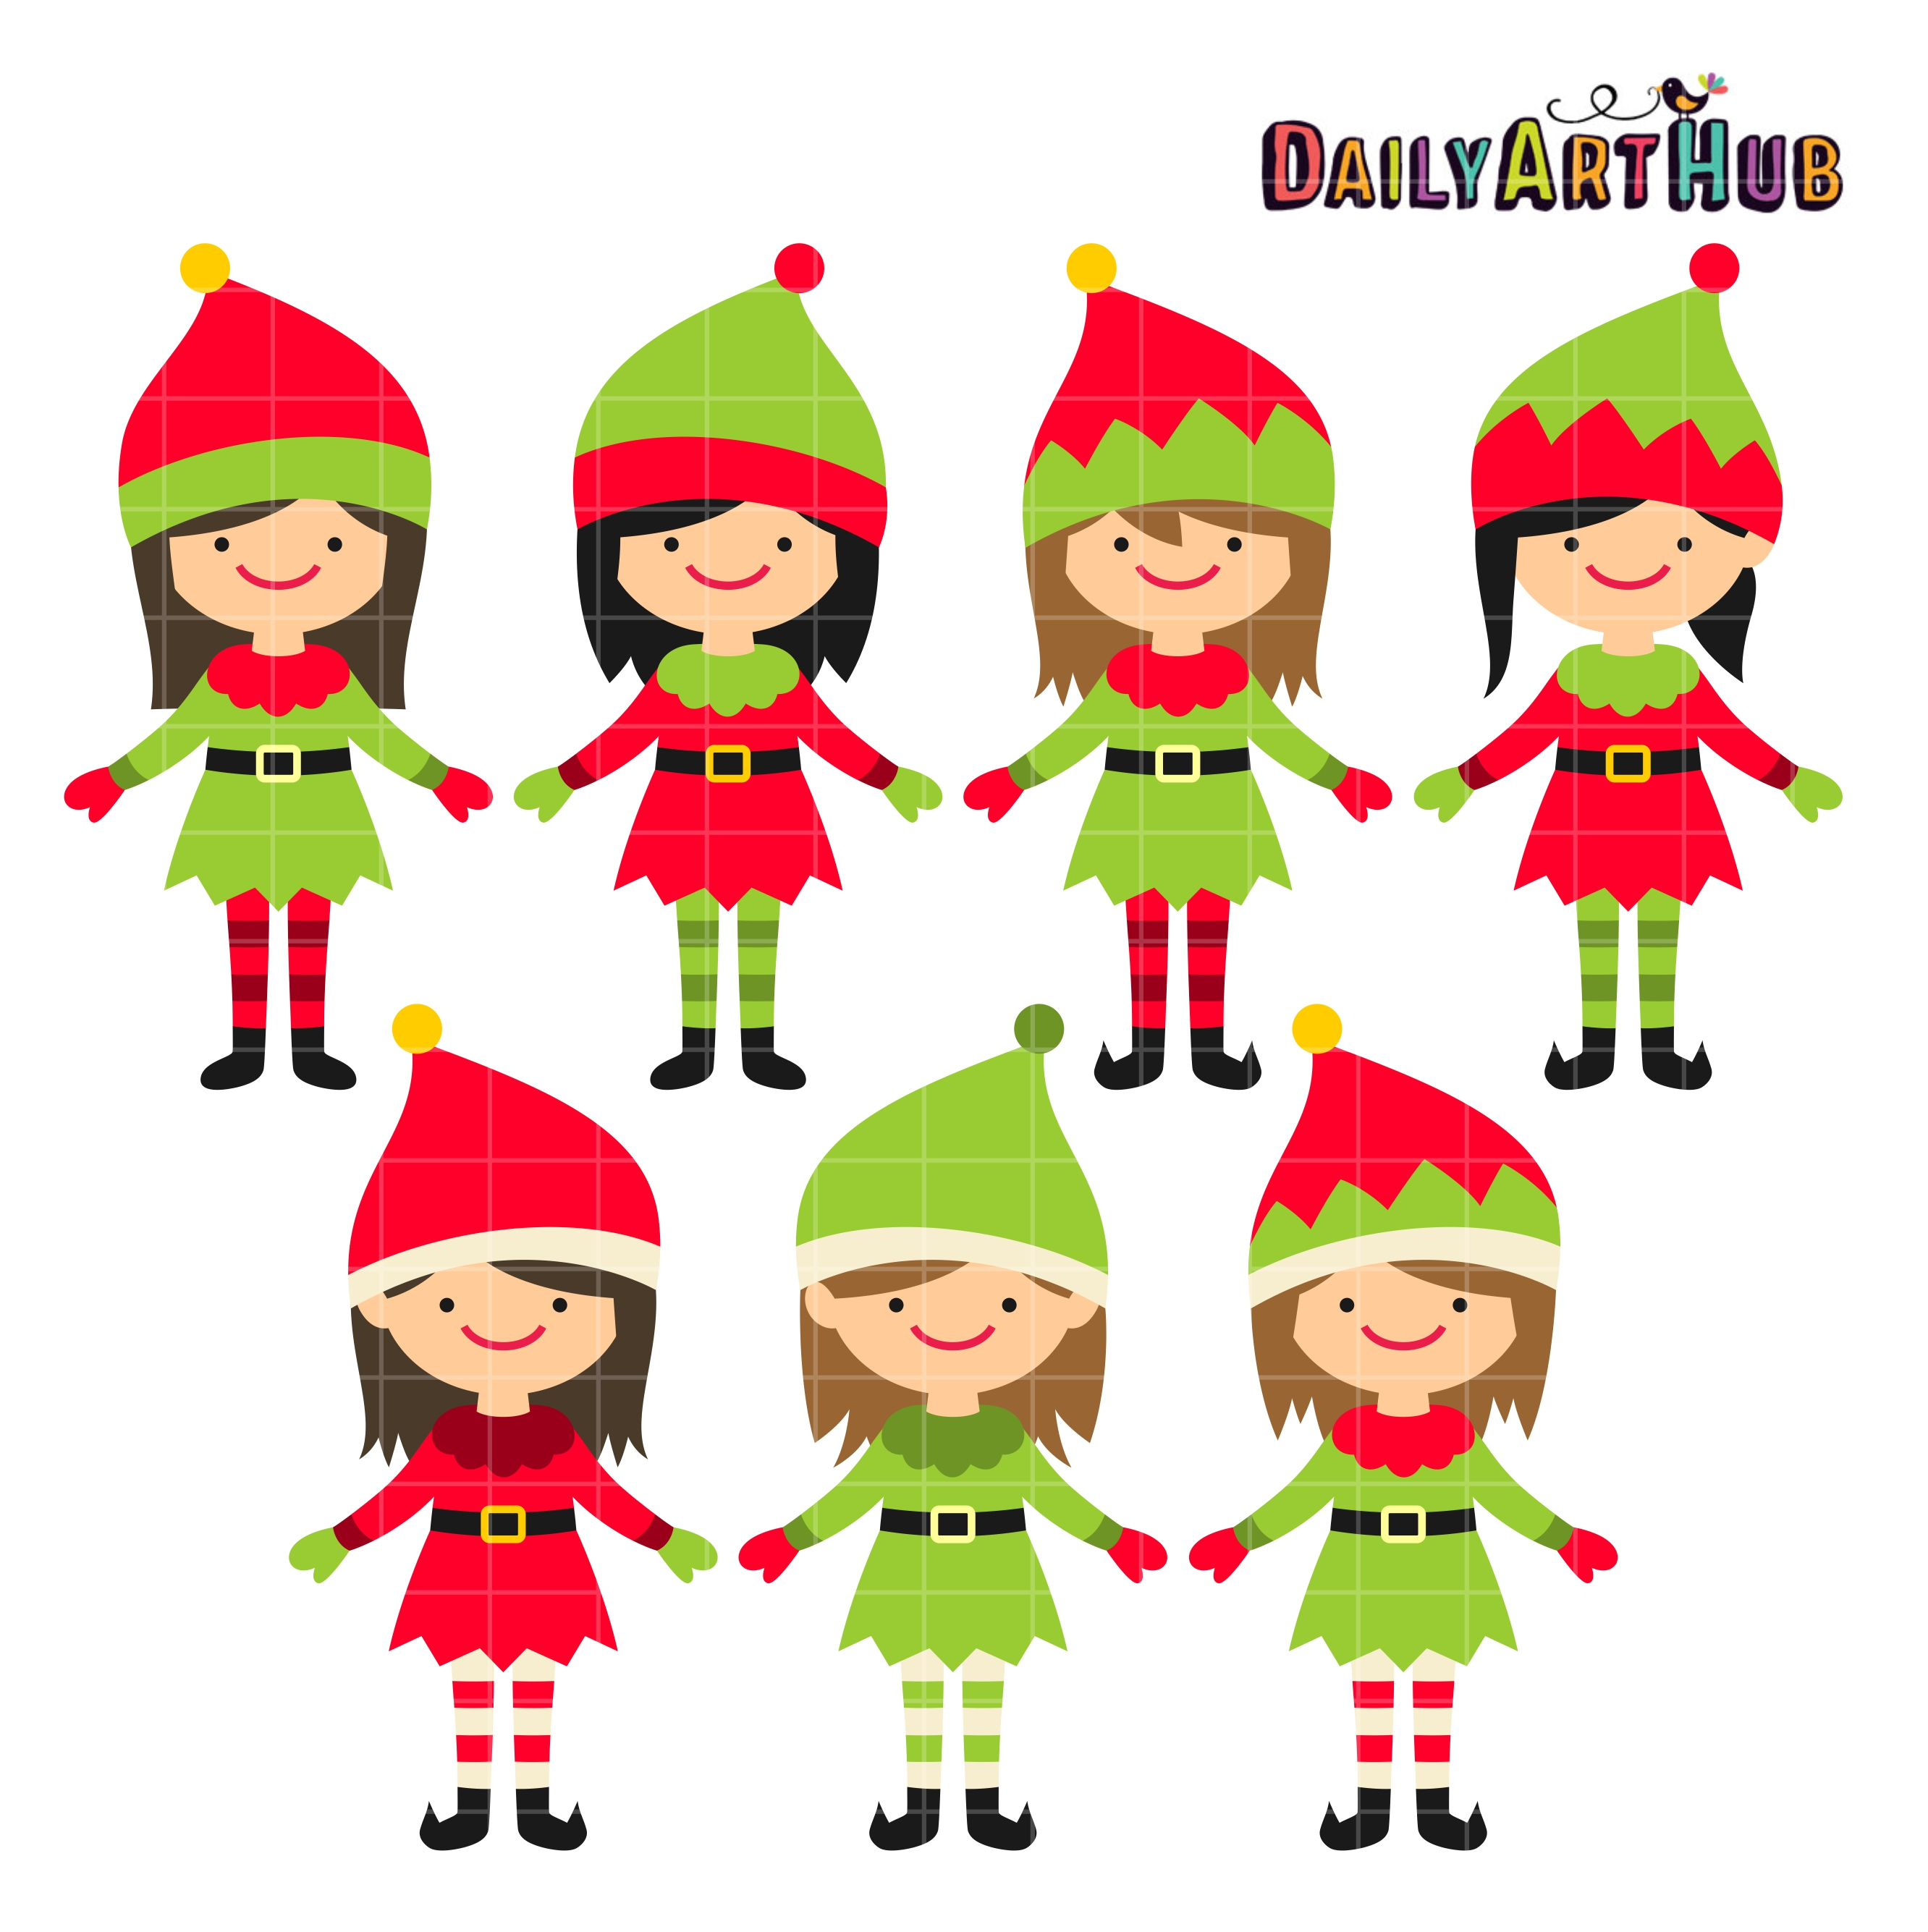 christmas cute elves clip art set daily art hub free clip art rh dailyarthub com free christian clipart christmas eve free clipart christmas eve